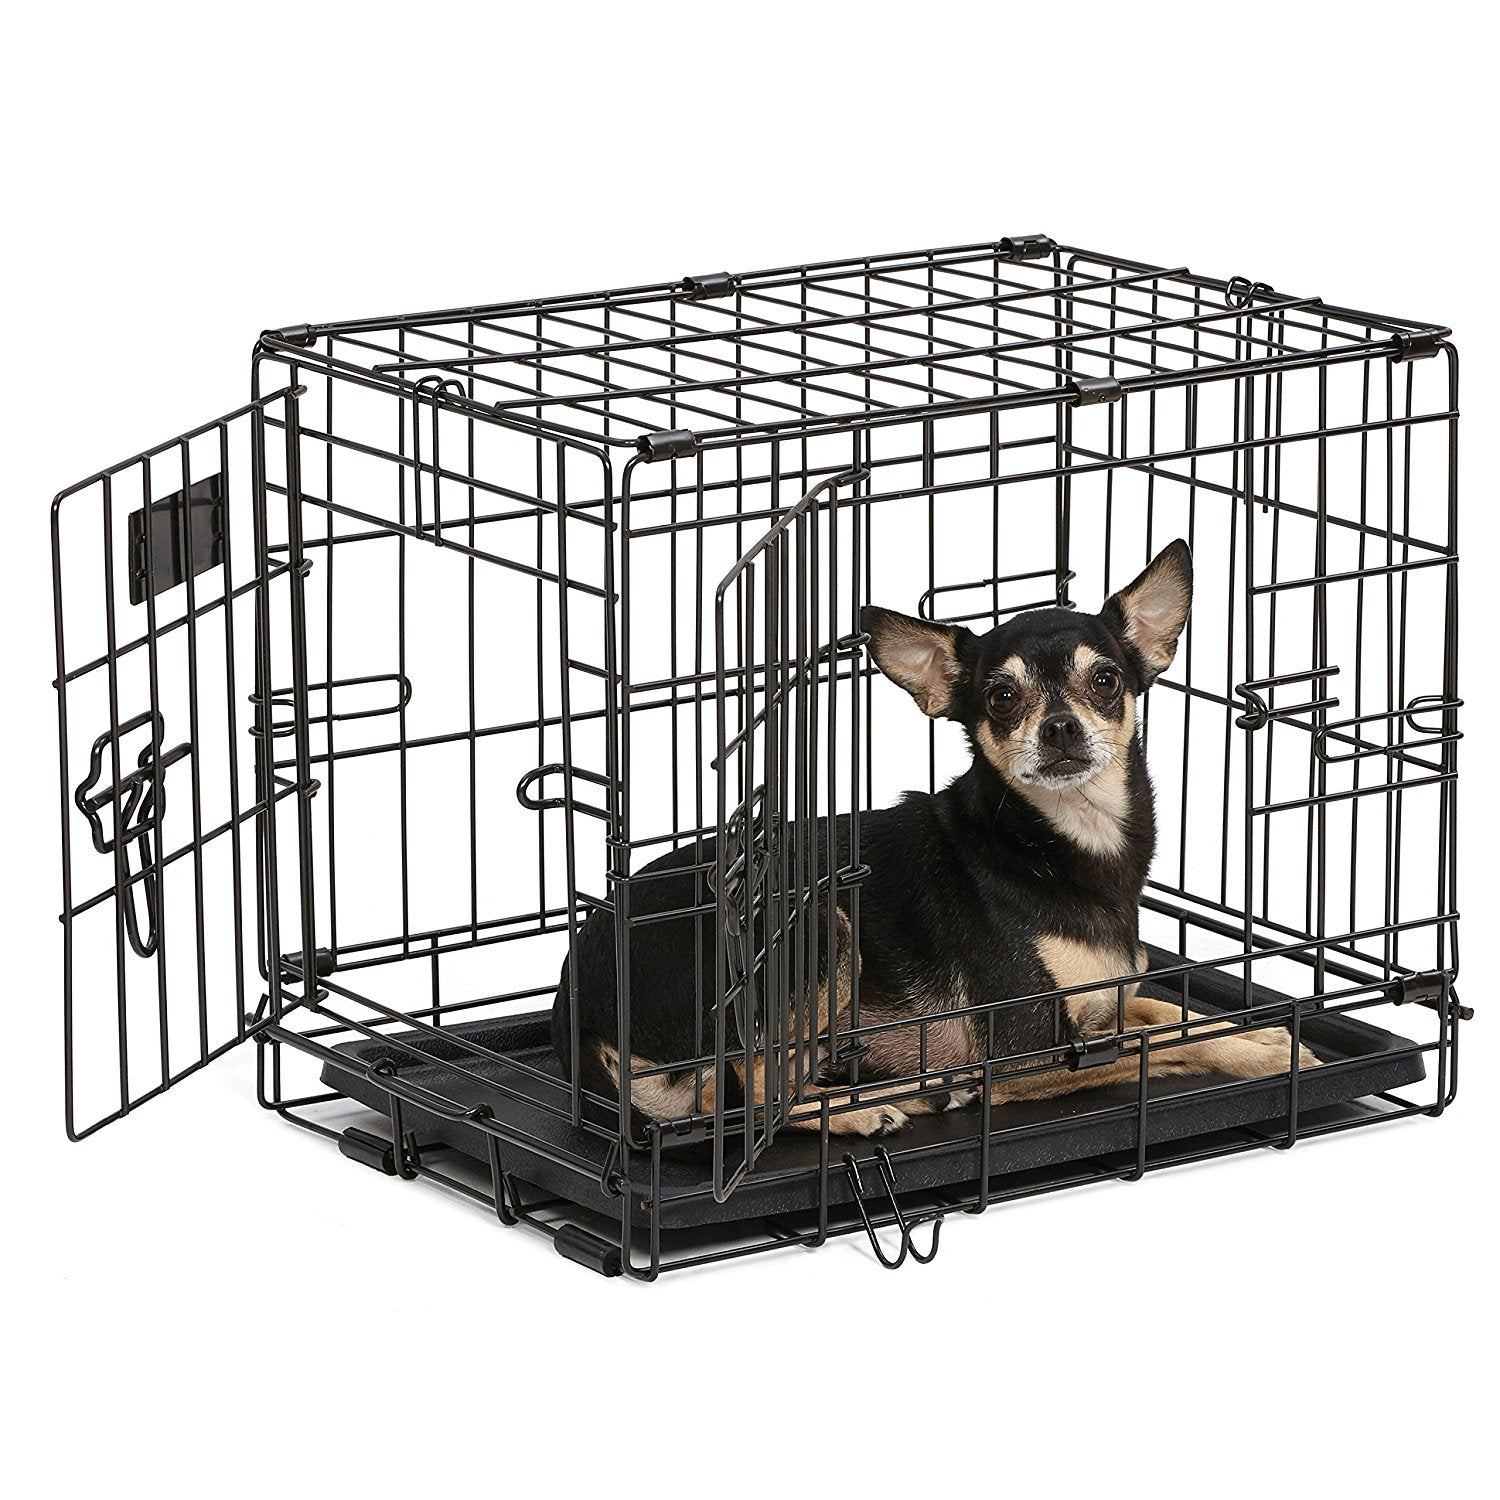 Midwest I-1518DD Dog Double Door i-Crate from Midwest